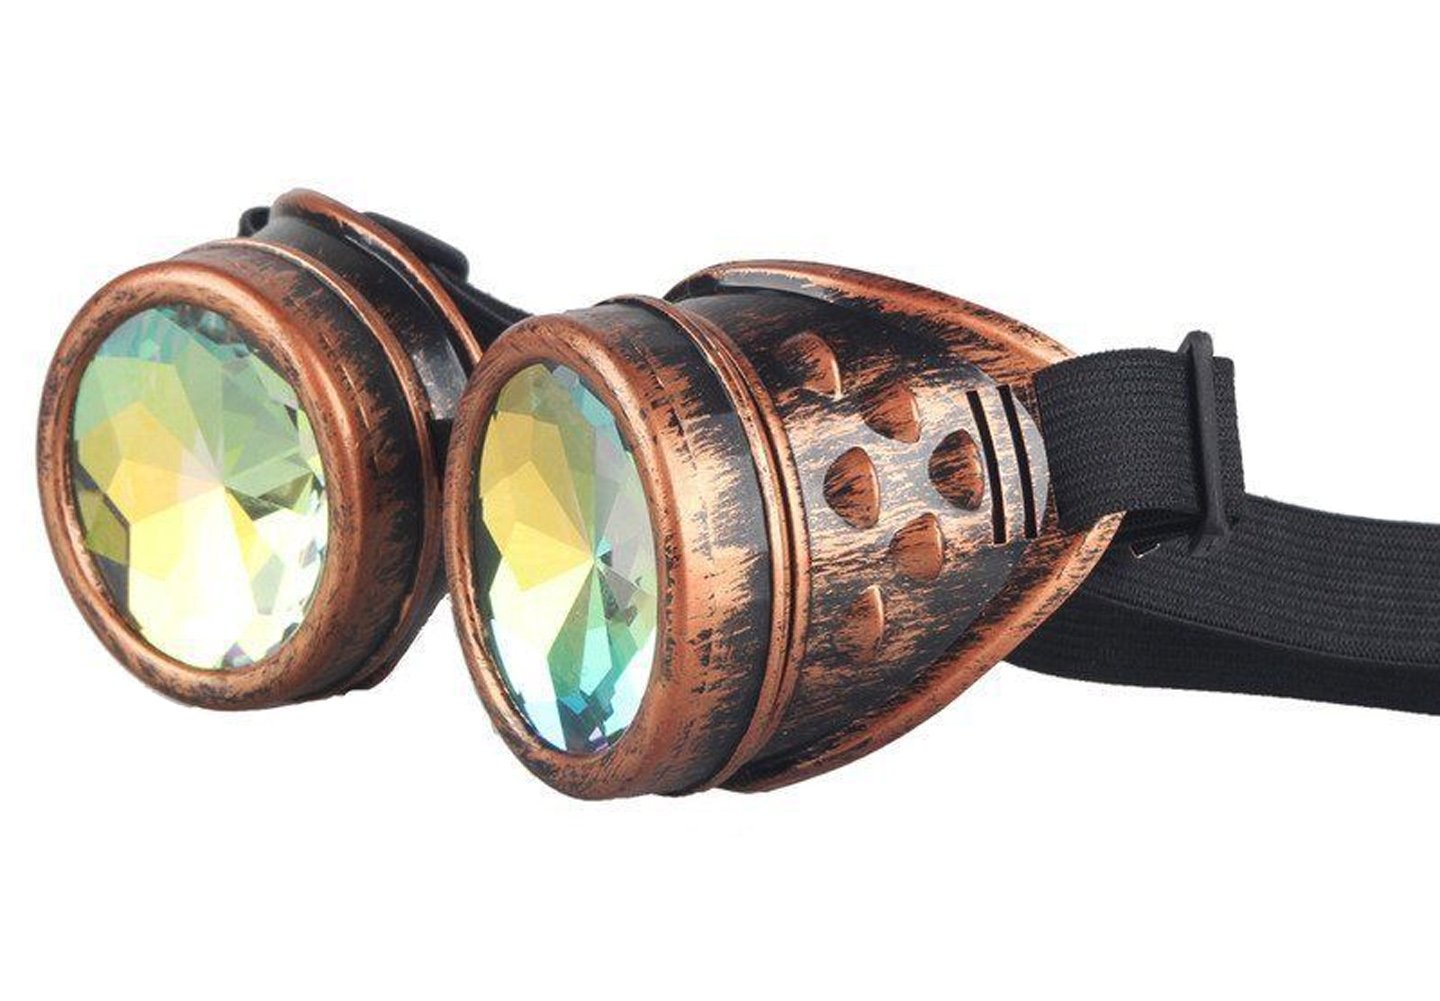 Kaleidoscope Steampunk Goggles Sunglasses With Elastic Band Retro Victorian Gothic Cosplay (Copper Frame)